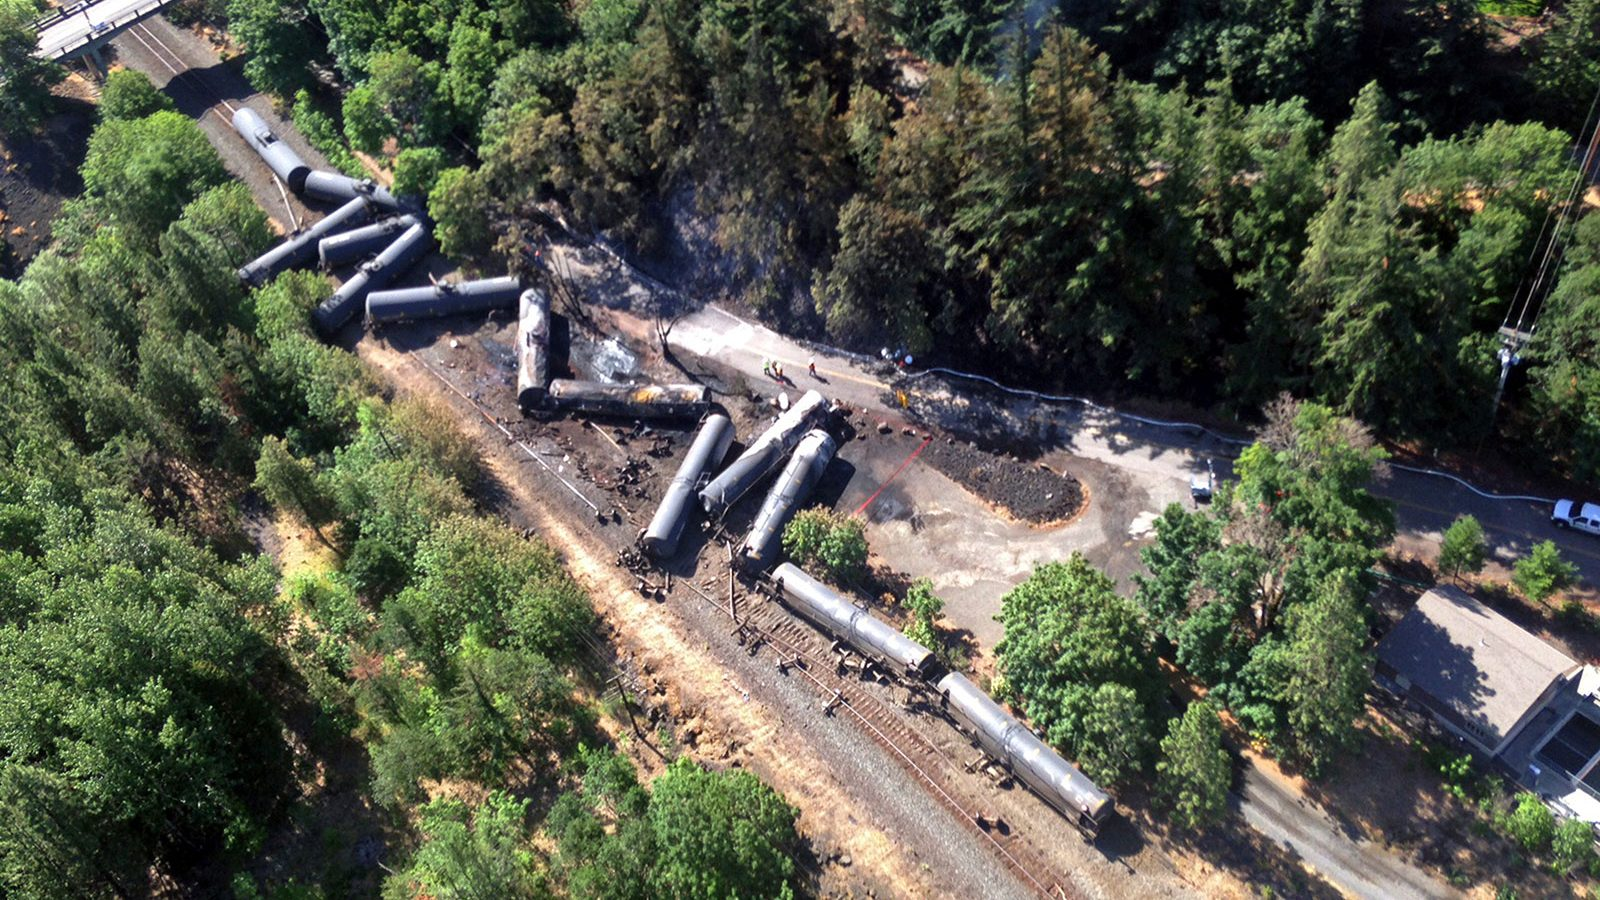 Scattered and burned oil tank cars after a train derailed and burned near Mosier, Oregon.